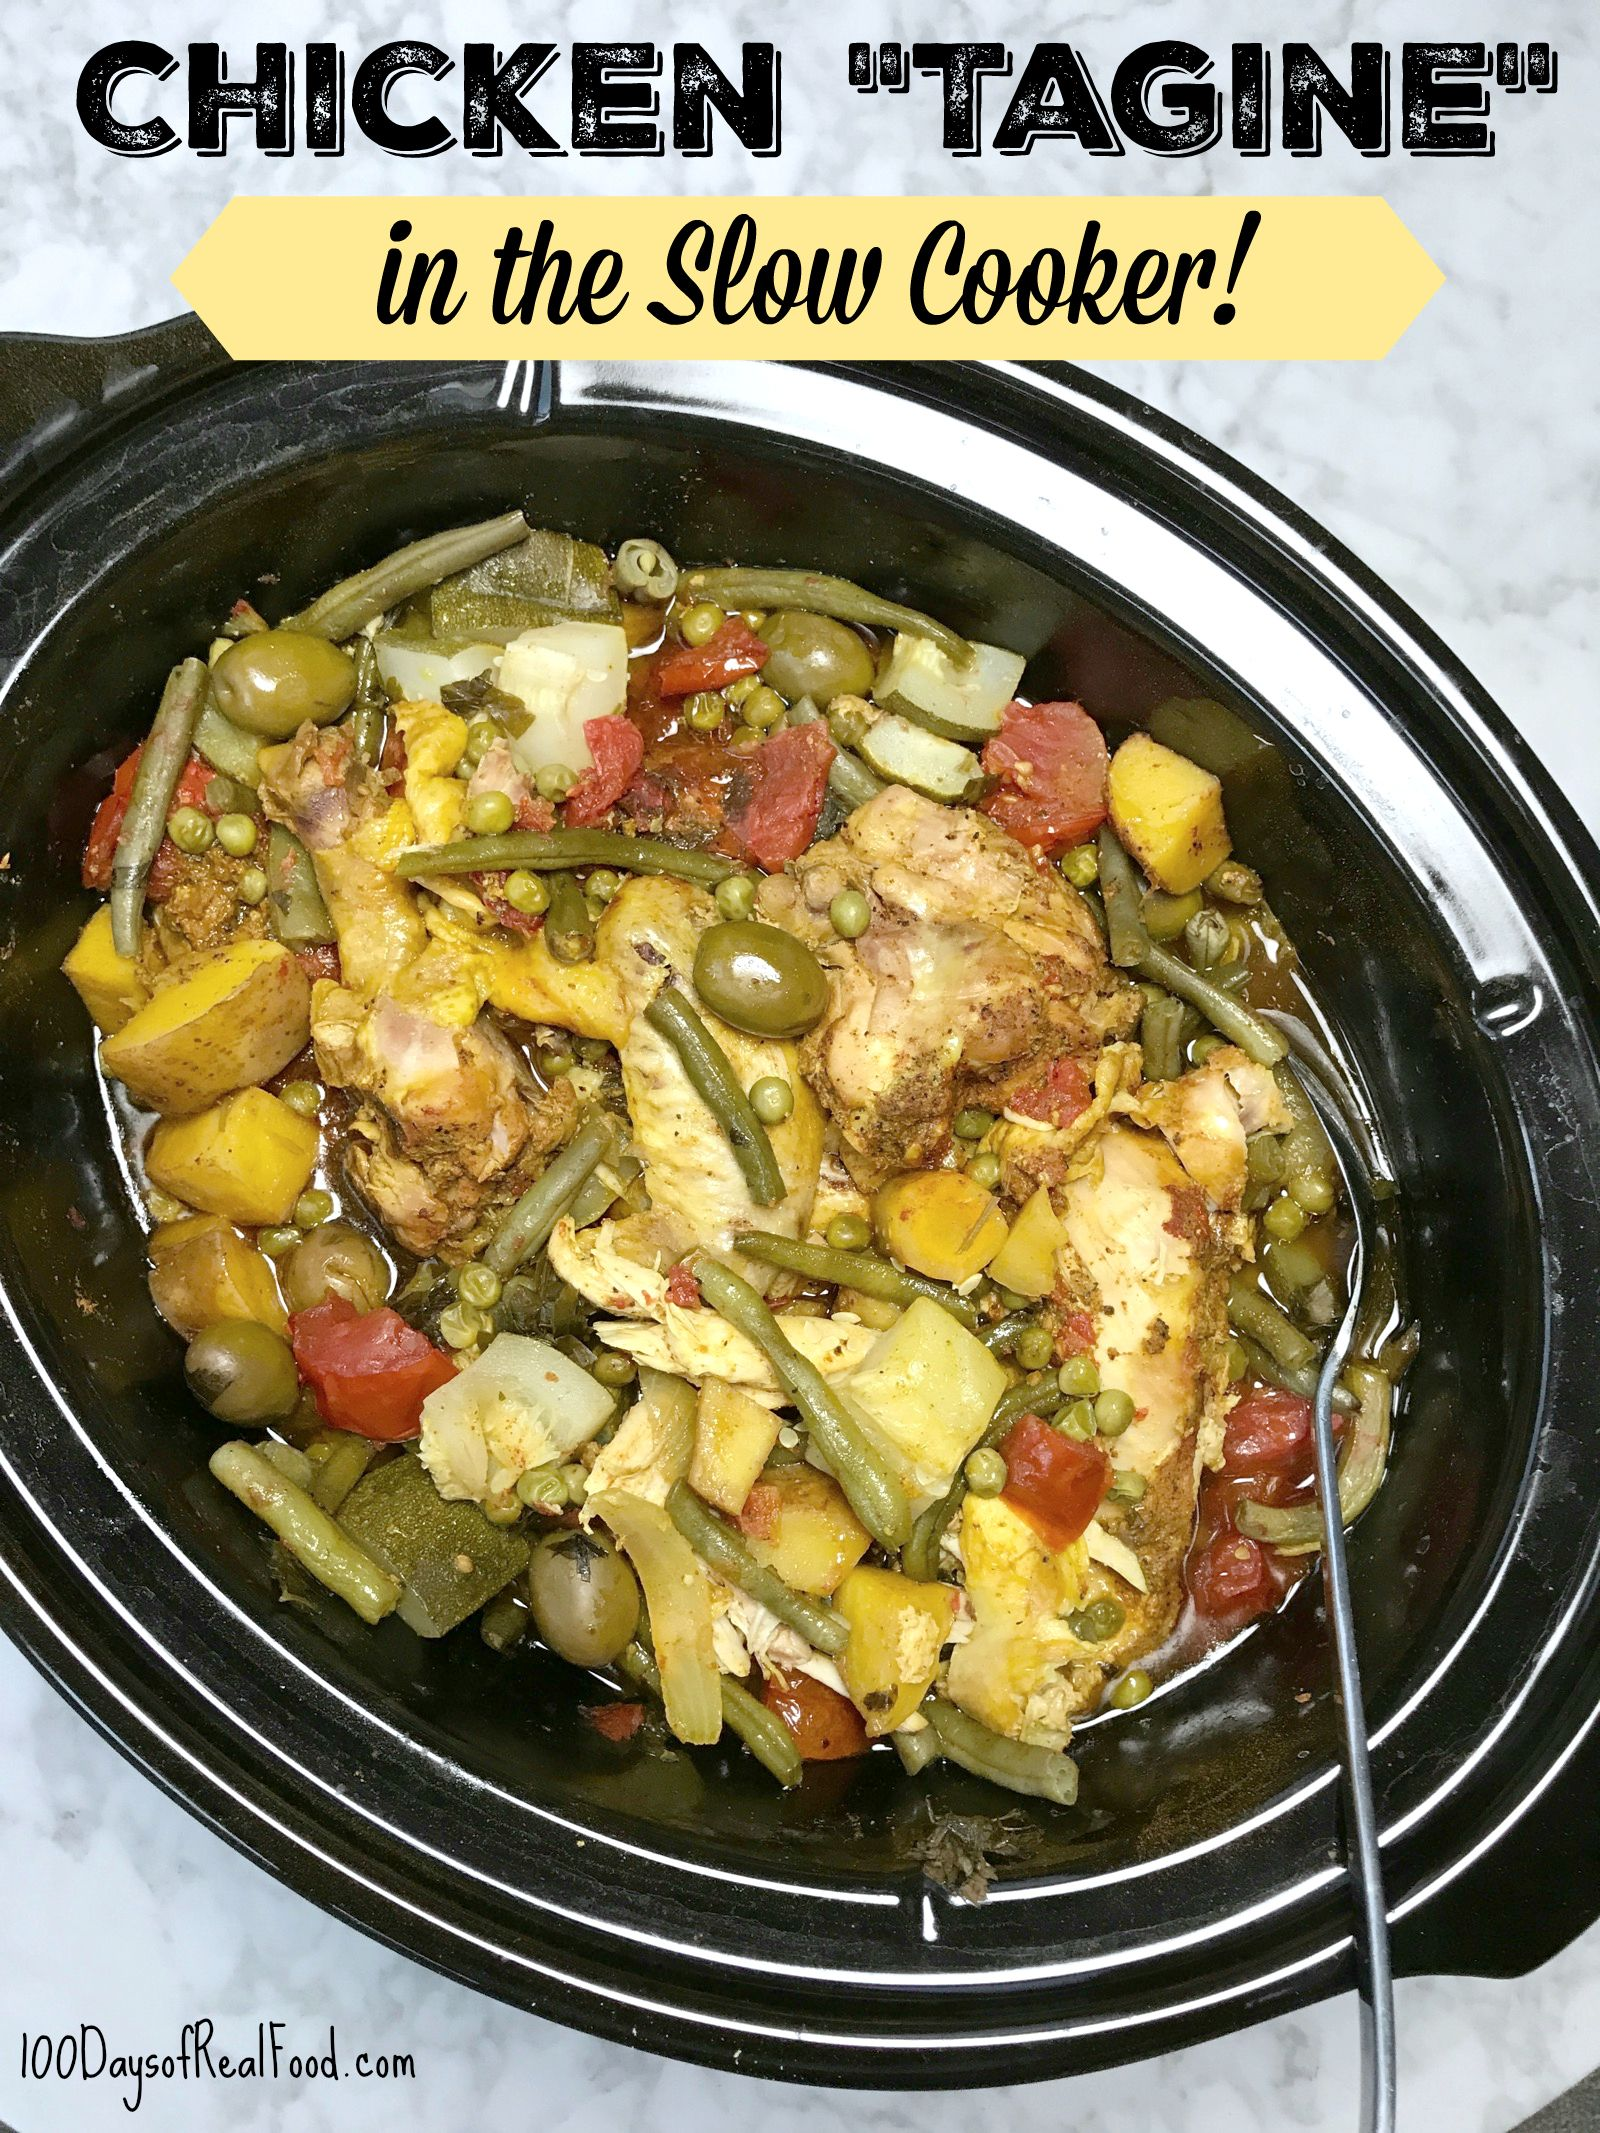 Slow cooker chicken tagine our trip to morocco 100 days of just got back from the trip of a lifetime to morocco and ive got tagine recipe for your slow cooker to share since we absolutely loved the food abroad forumfinder Image collections